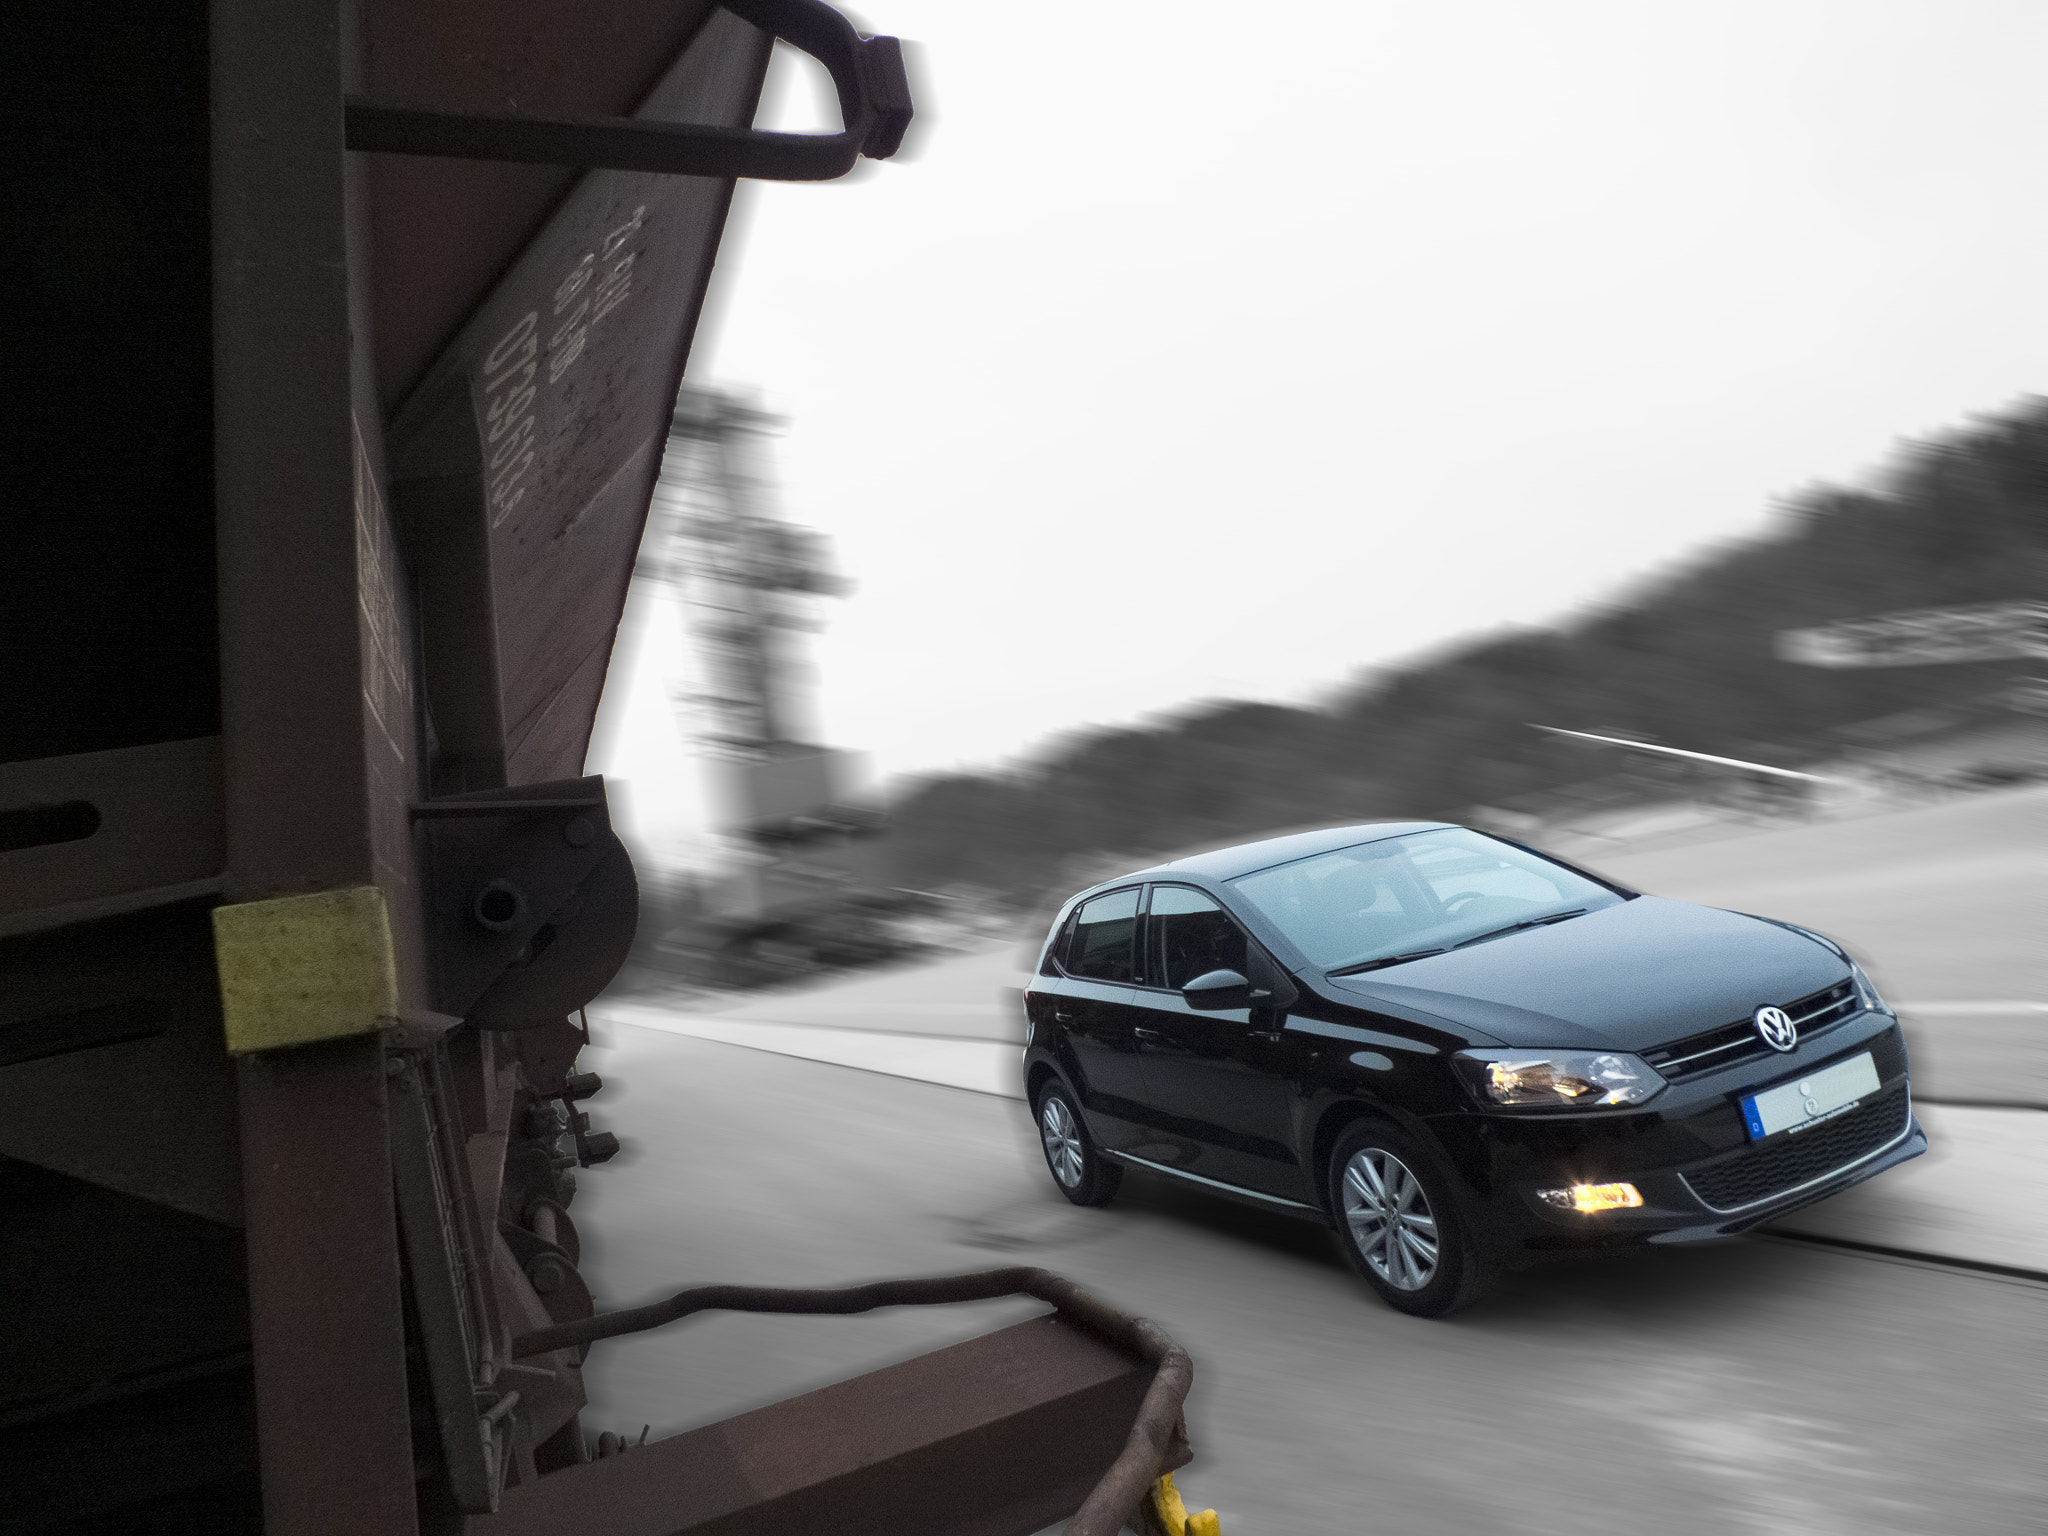 Photograph vw polo v type 6r black - style edition by DHα Photography on 500px